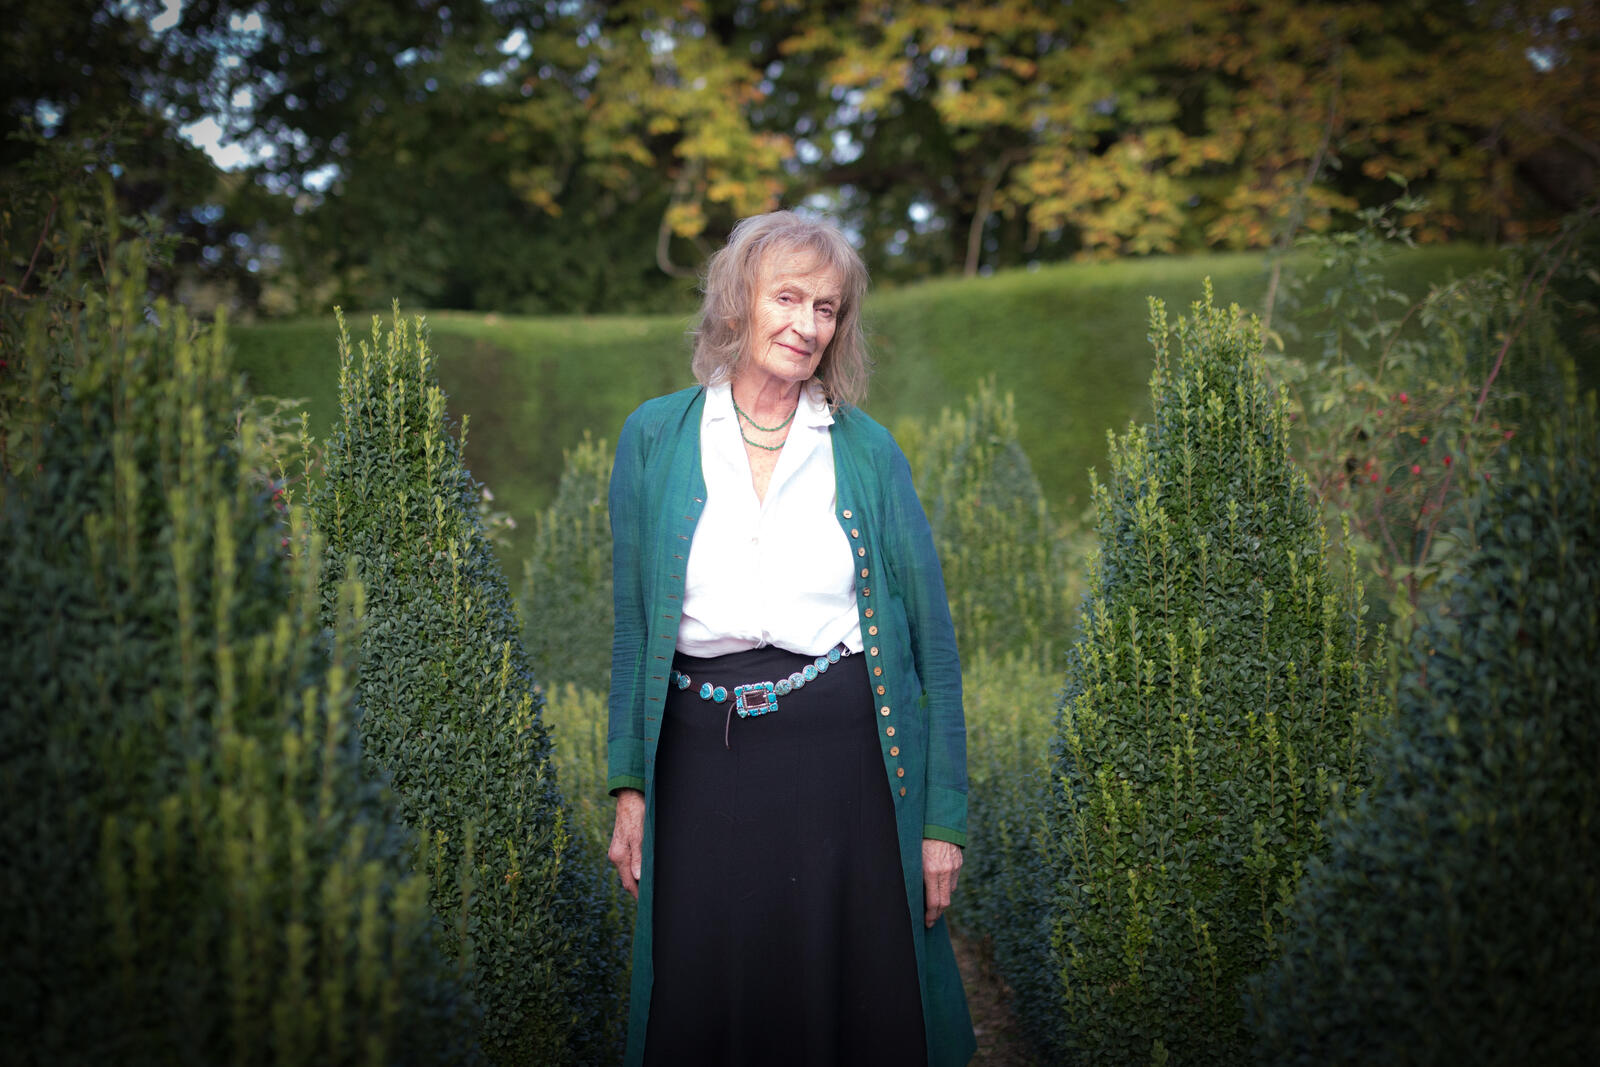 4: Amanda Feilding: beat poets, psychedelics and self-trepanation with the leading LSD campaigner and countess